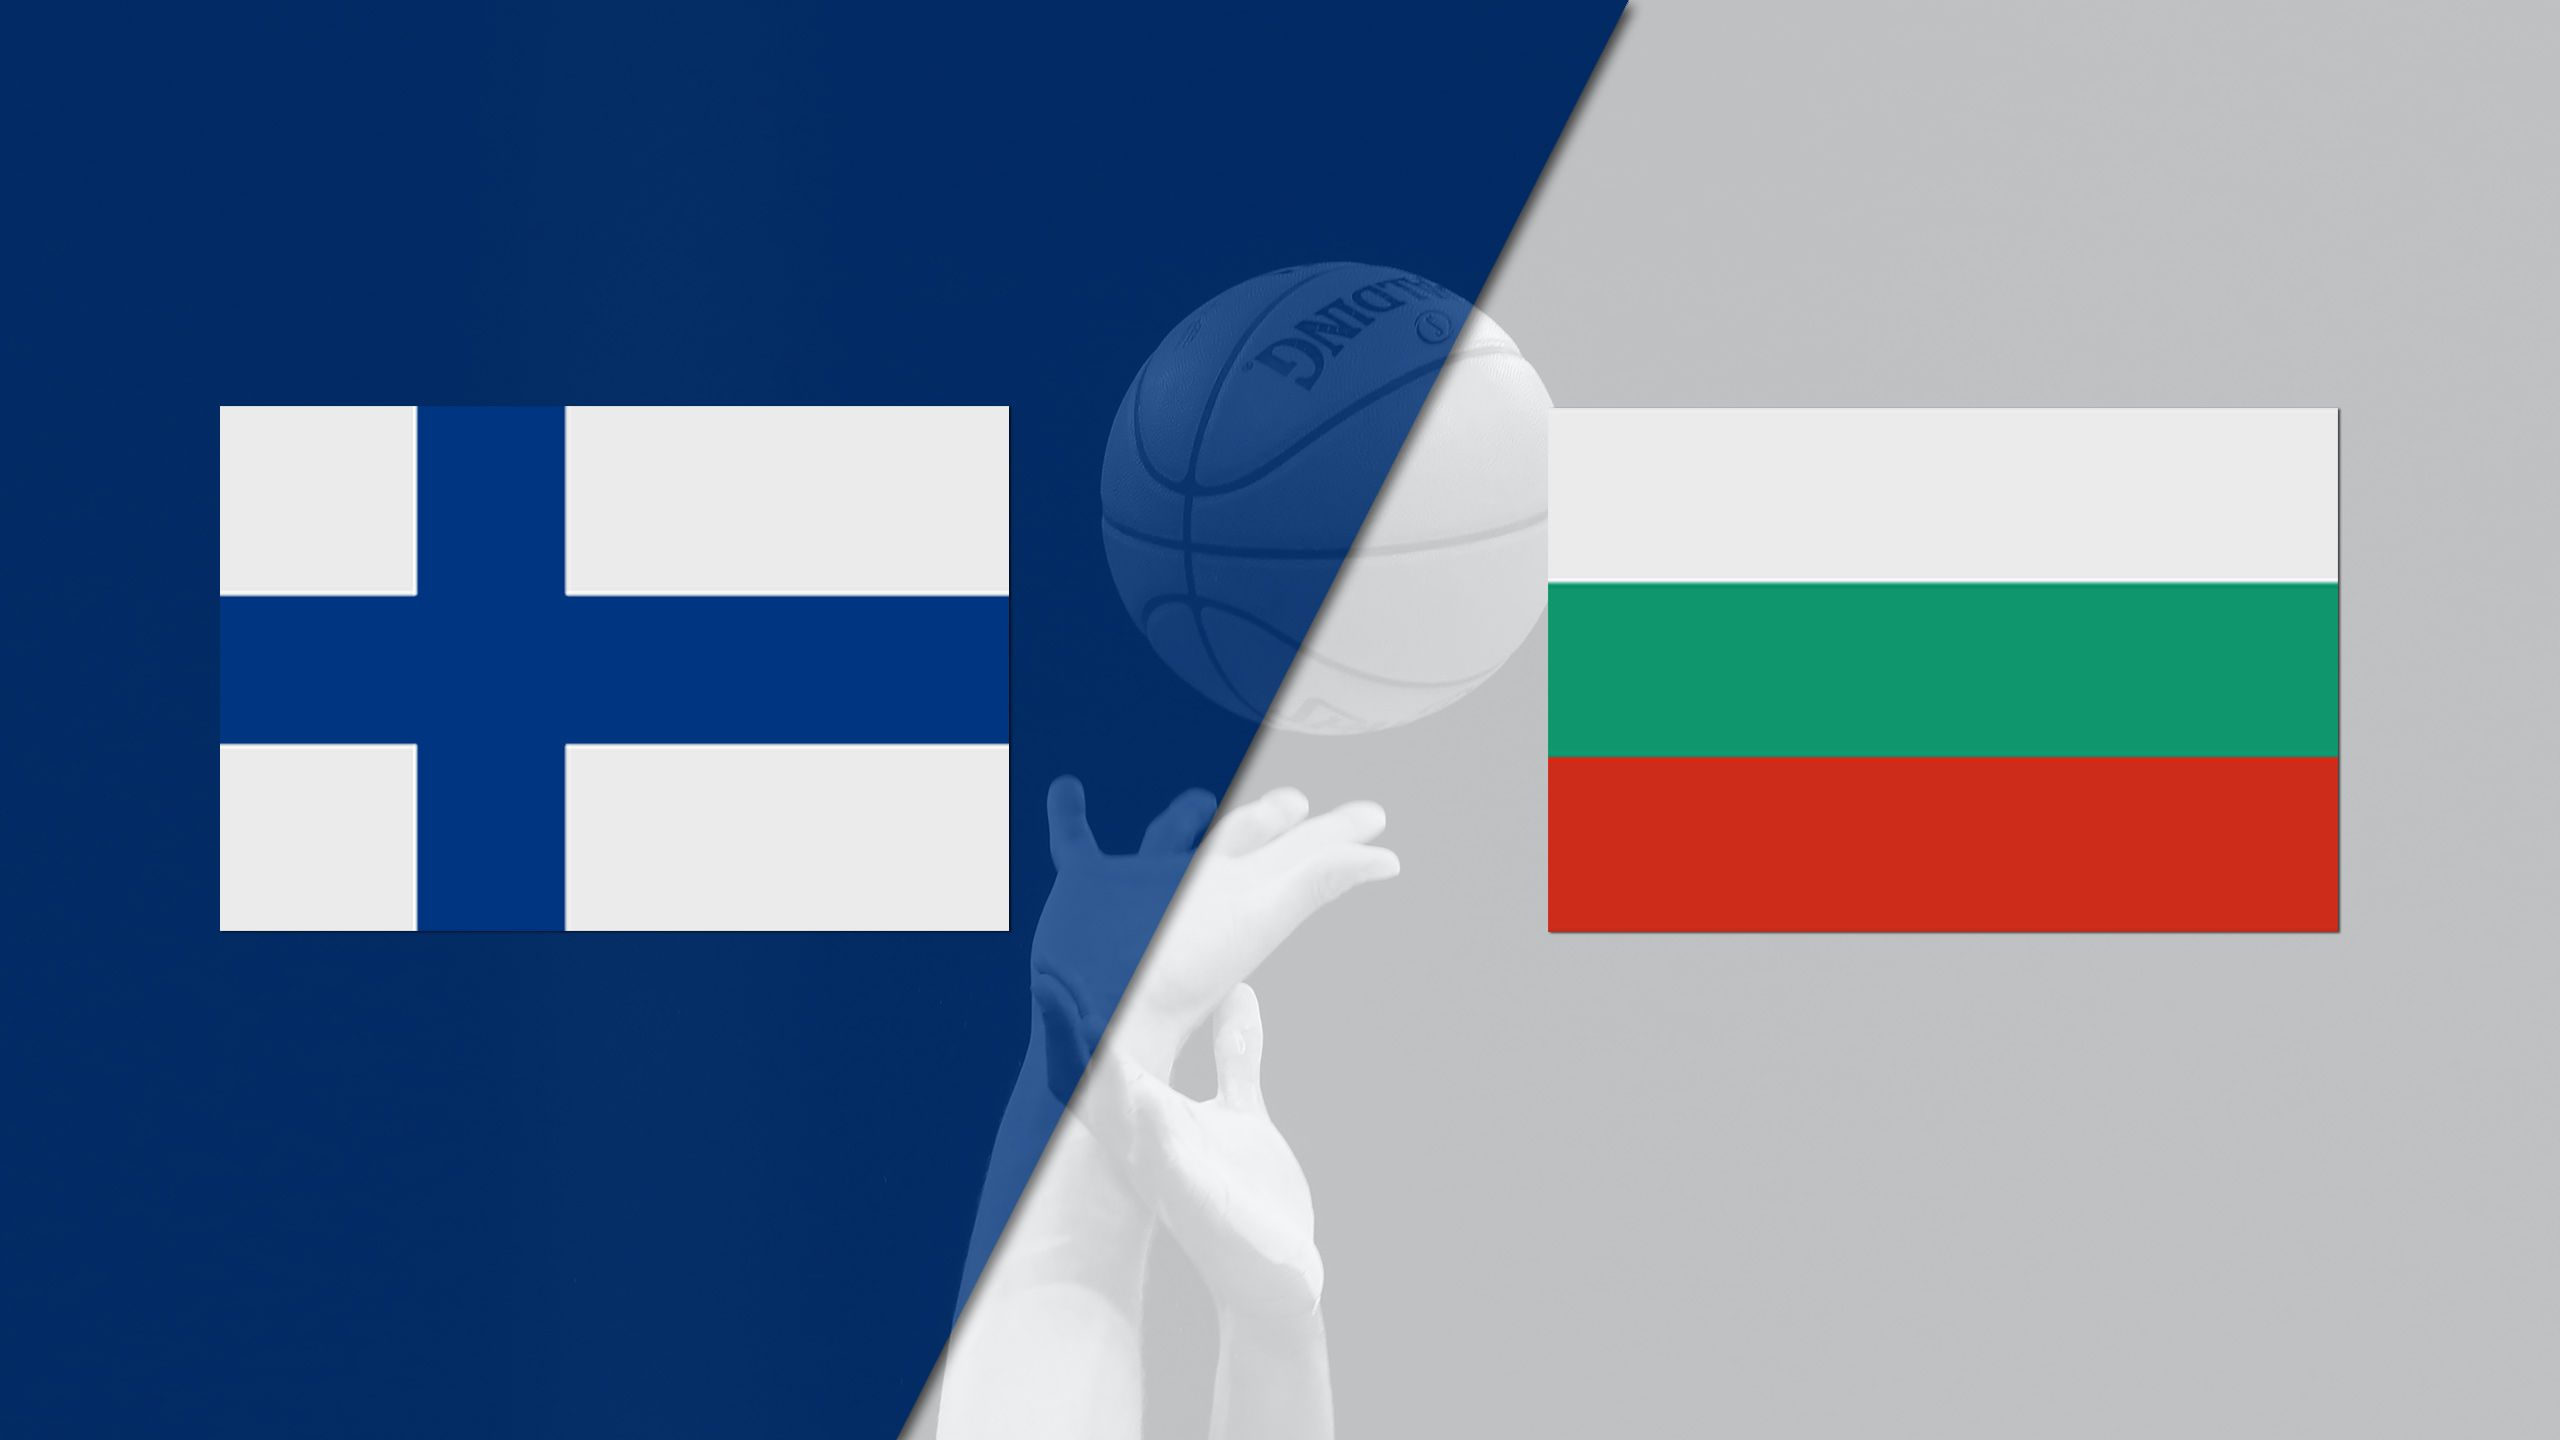 Finland vs. Bulgaria (FIBA World Cup 2019 Qualifier)